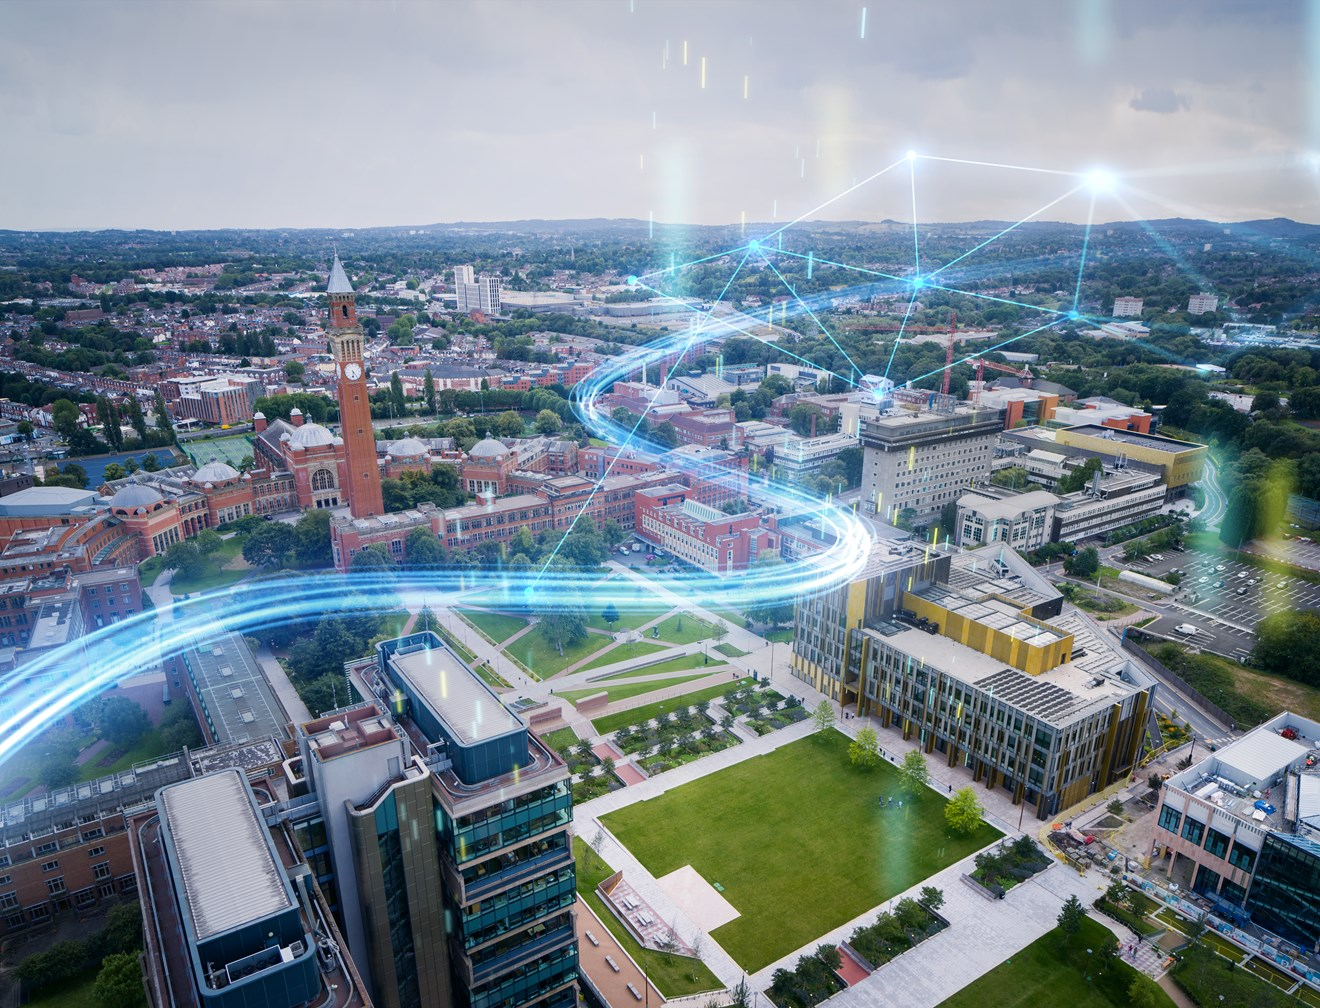 The University of Birmingham partners with Siemens to create the smartest university campus in the world: Siemens-EPS-UoB-Visual original high res